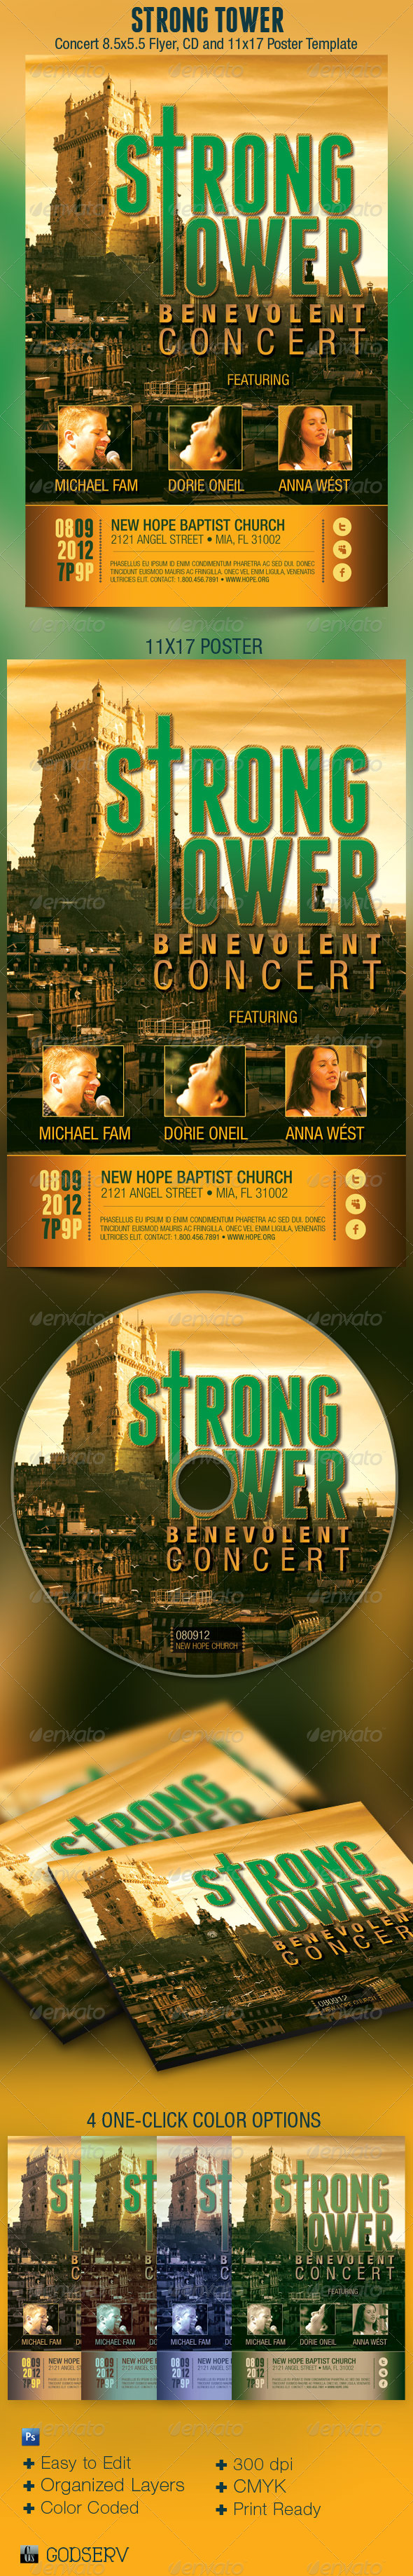 Strong Tower Church Flyer, Poster and CD Template - Church Flyers